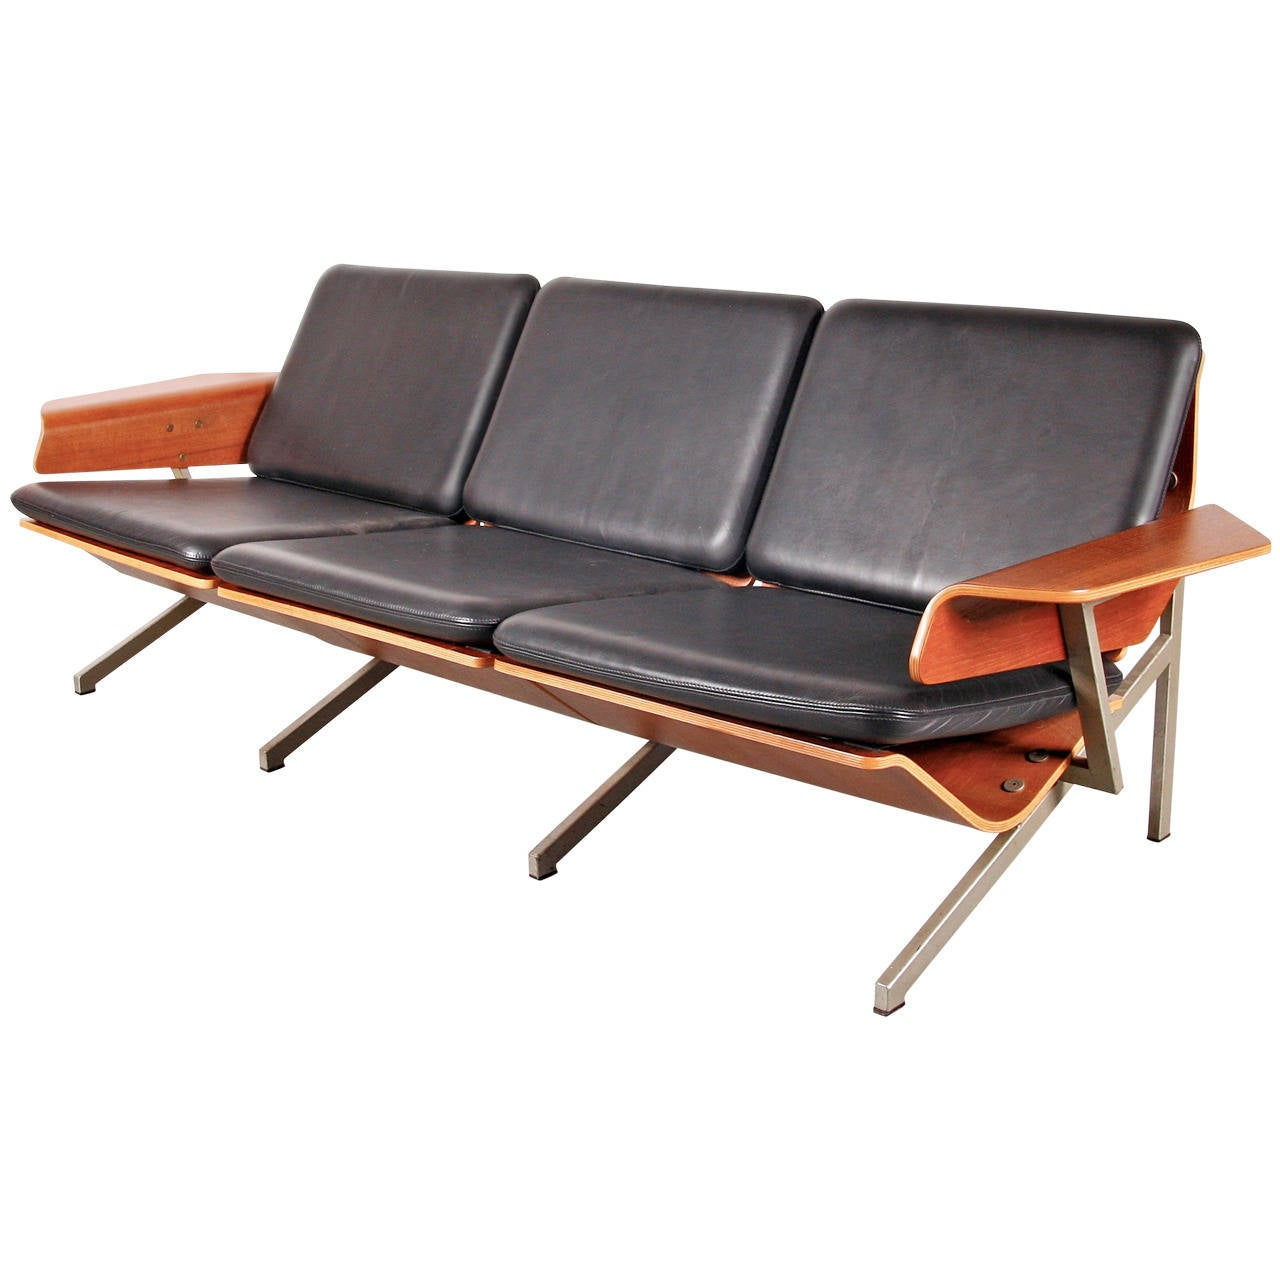 Rare Cornelis Zitman Three-Seat Leather Sofa, 1964 For Sale